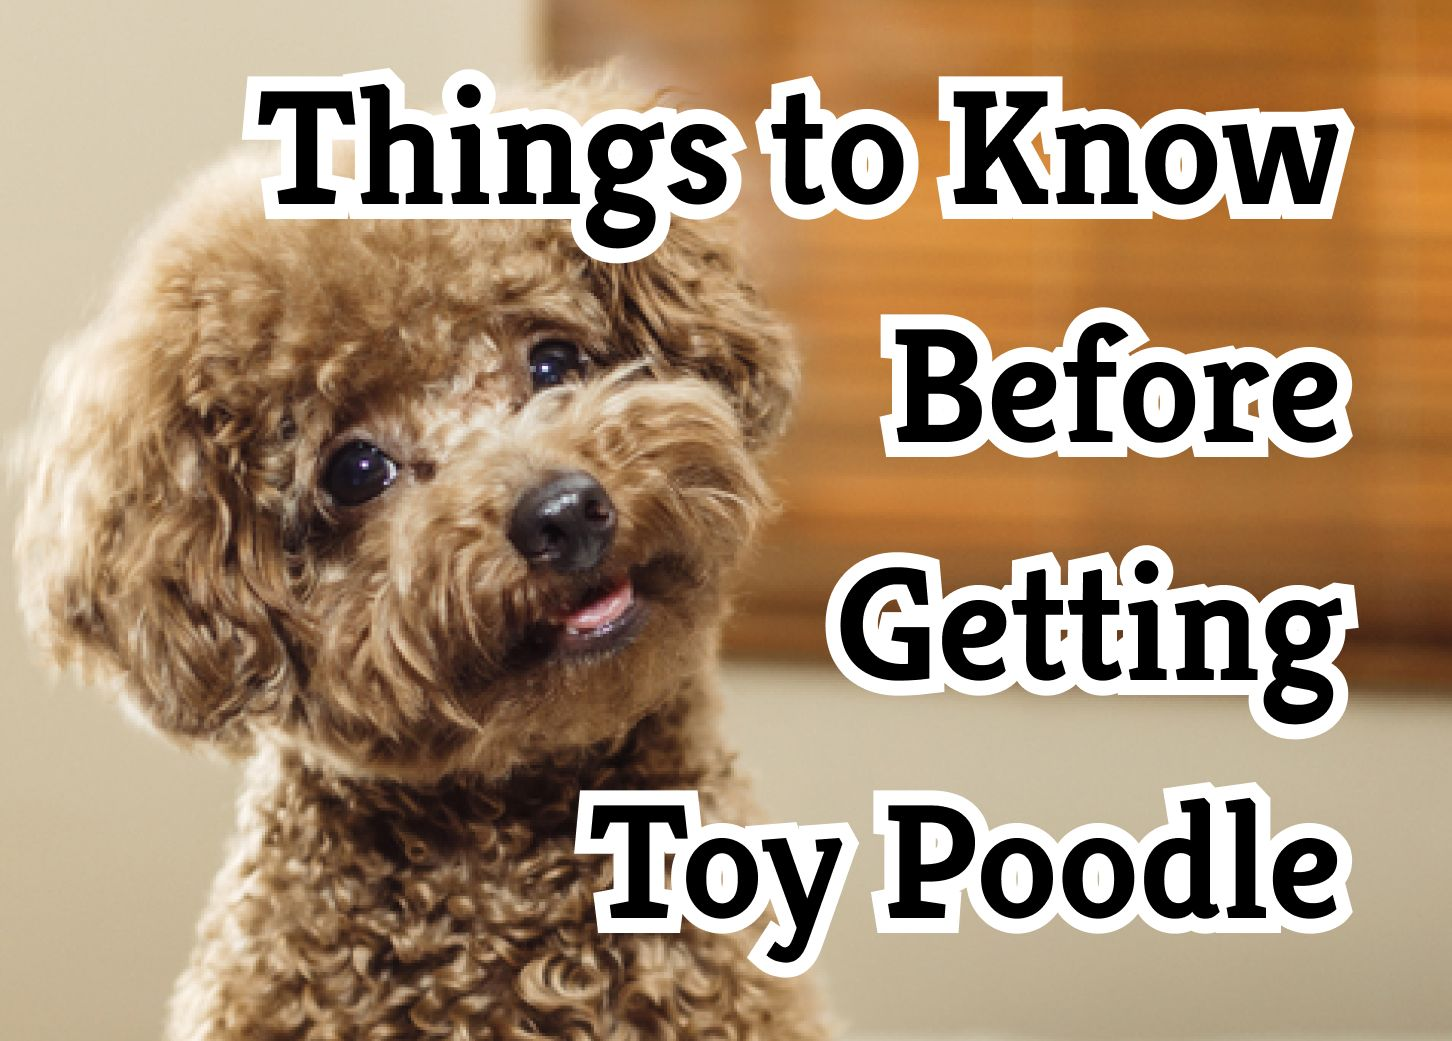 37 Crucial Things to Know About Toy Poodles